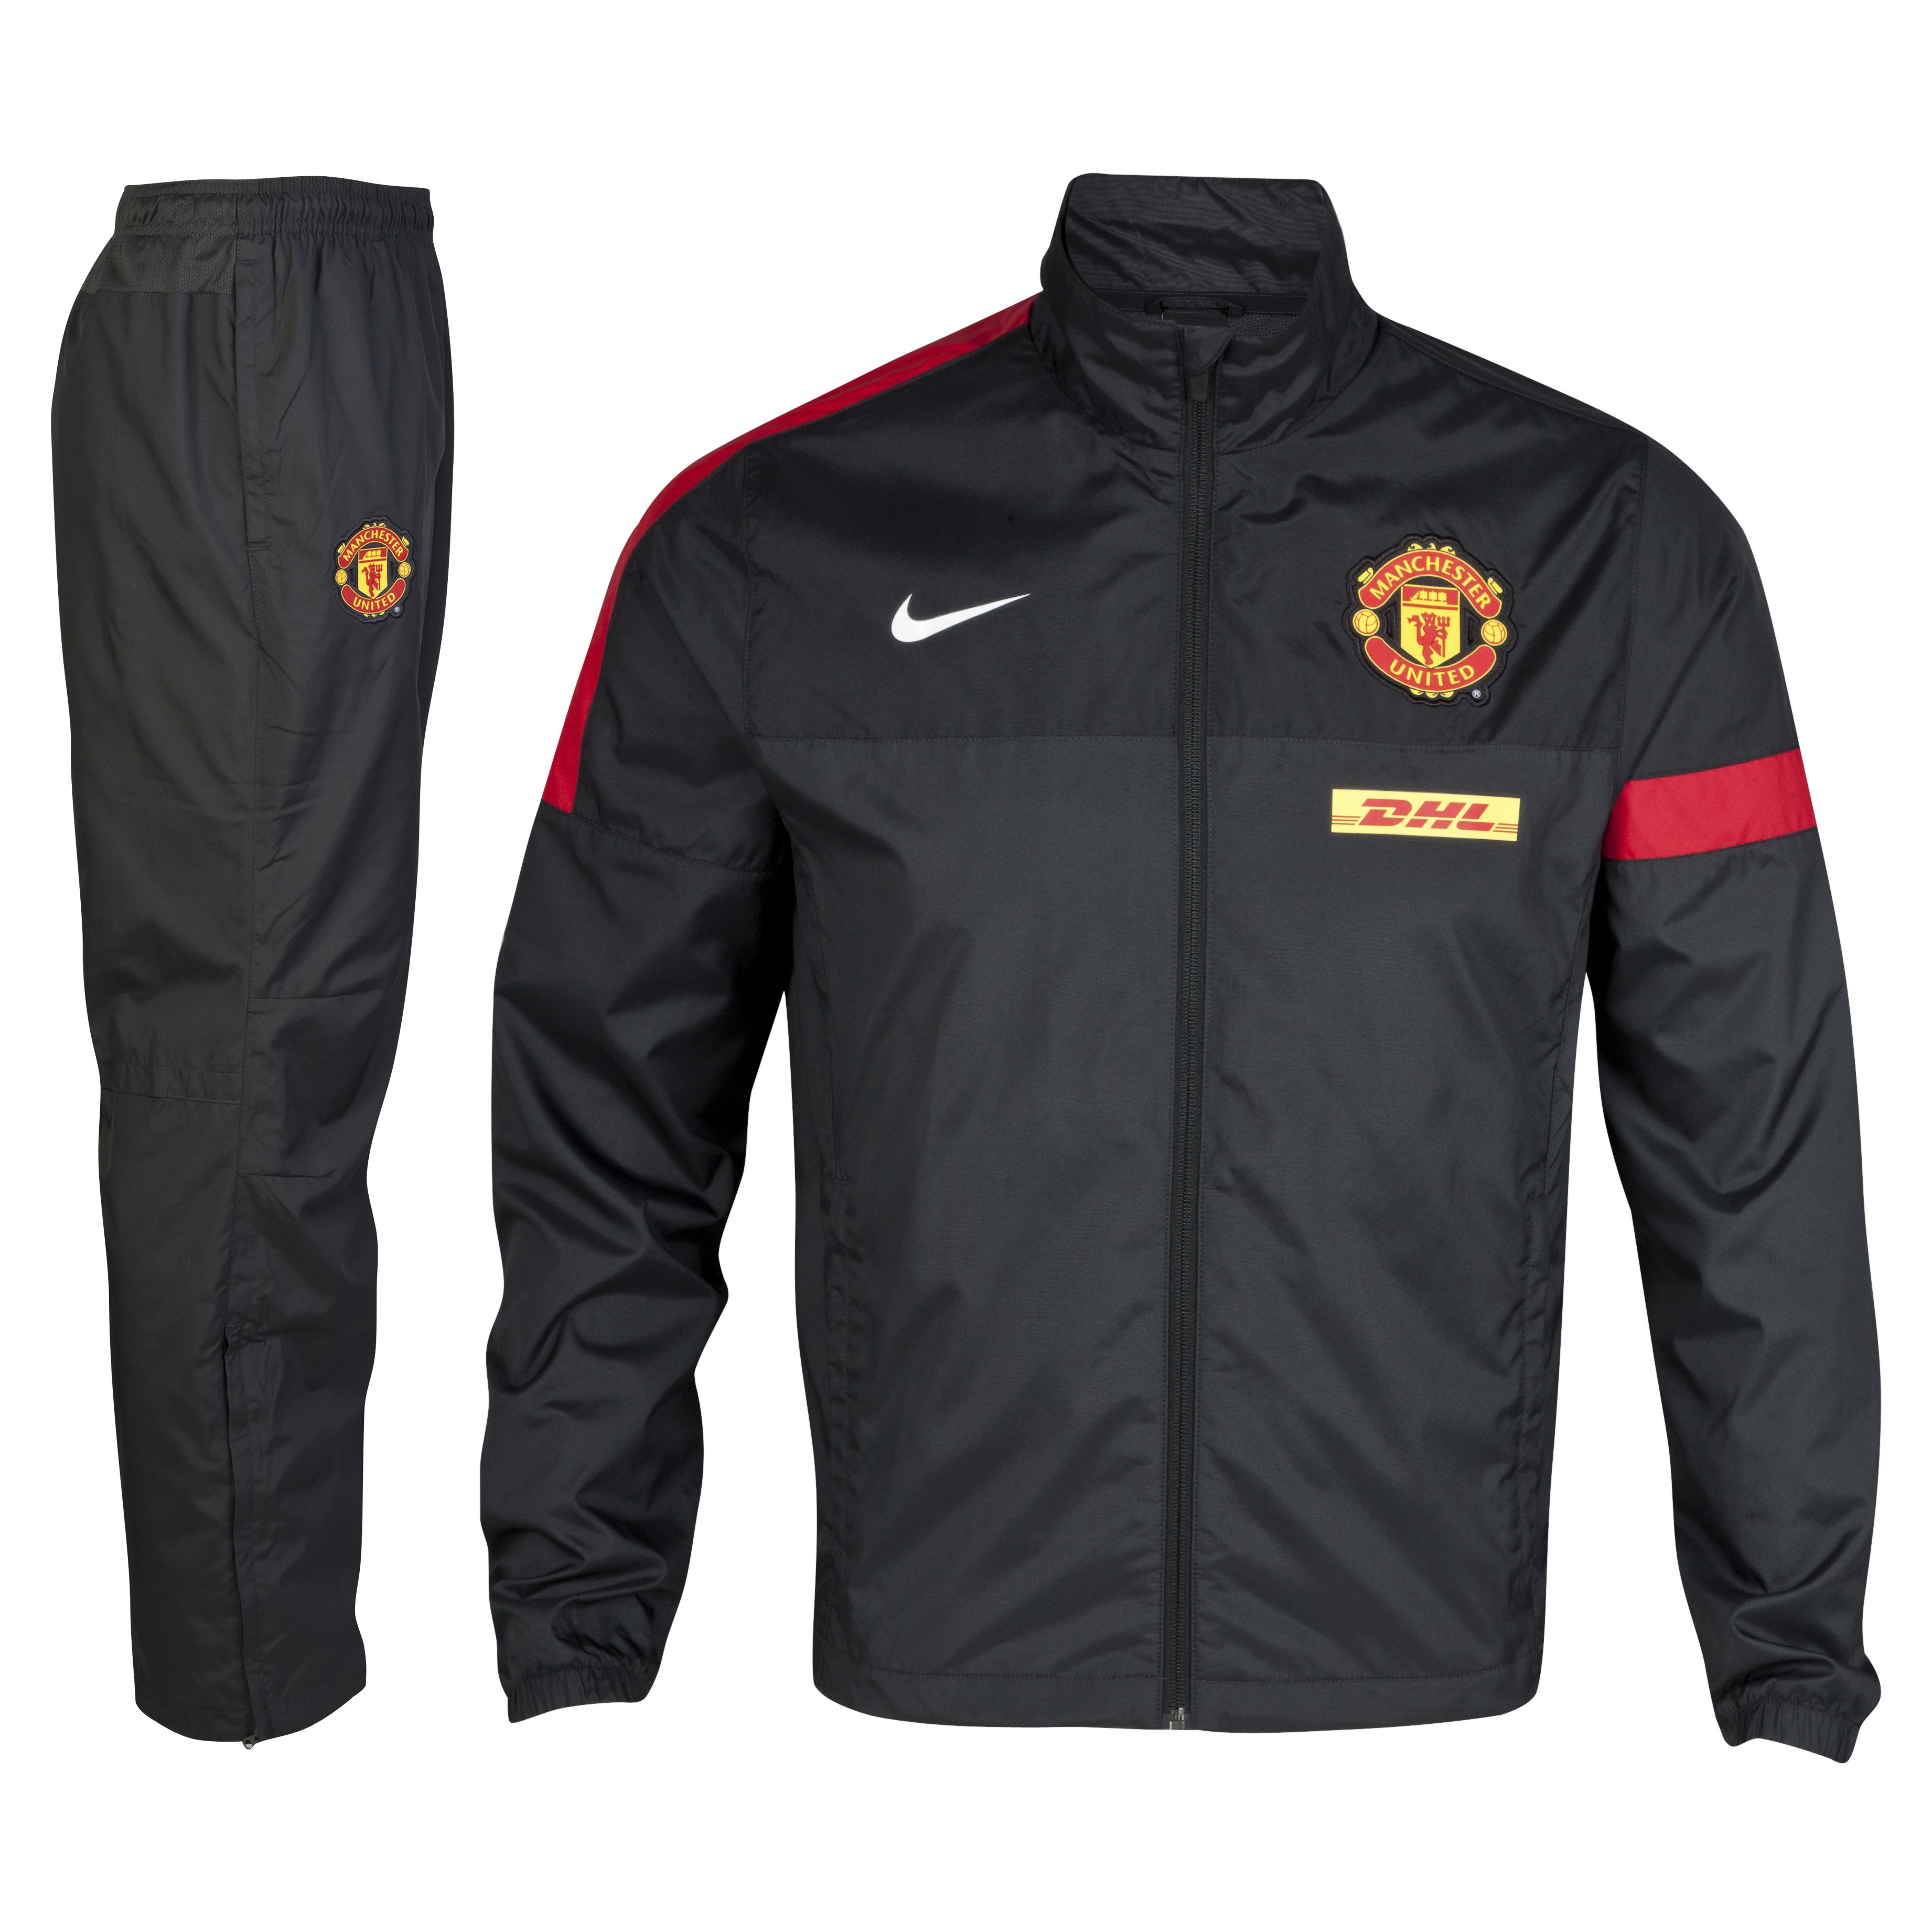 Manchester United Sideline Warm-up Woven Tracksuit - Anthracite/Black/Diablo Red/White - Kids